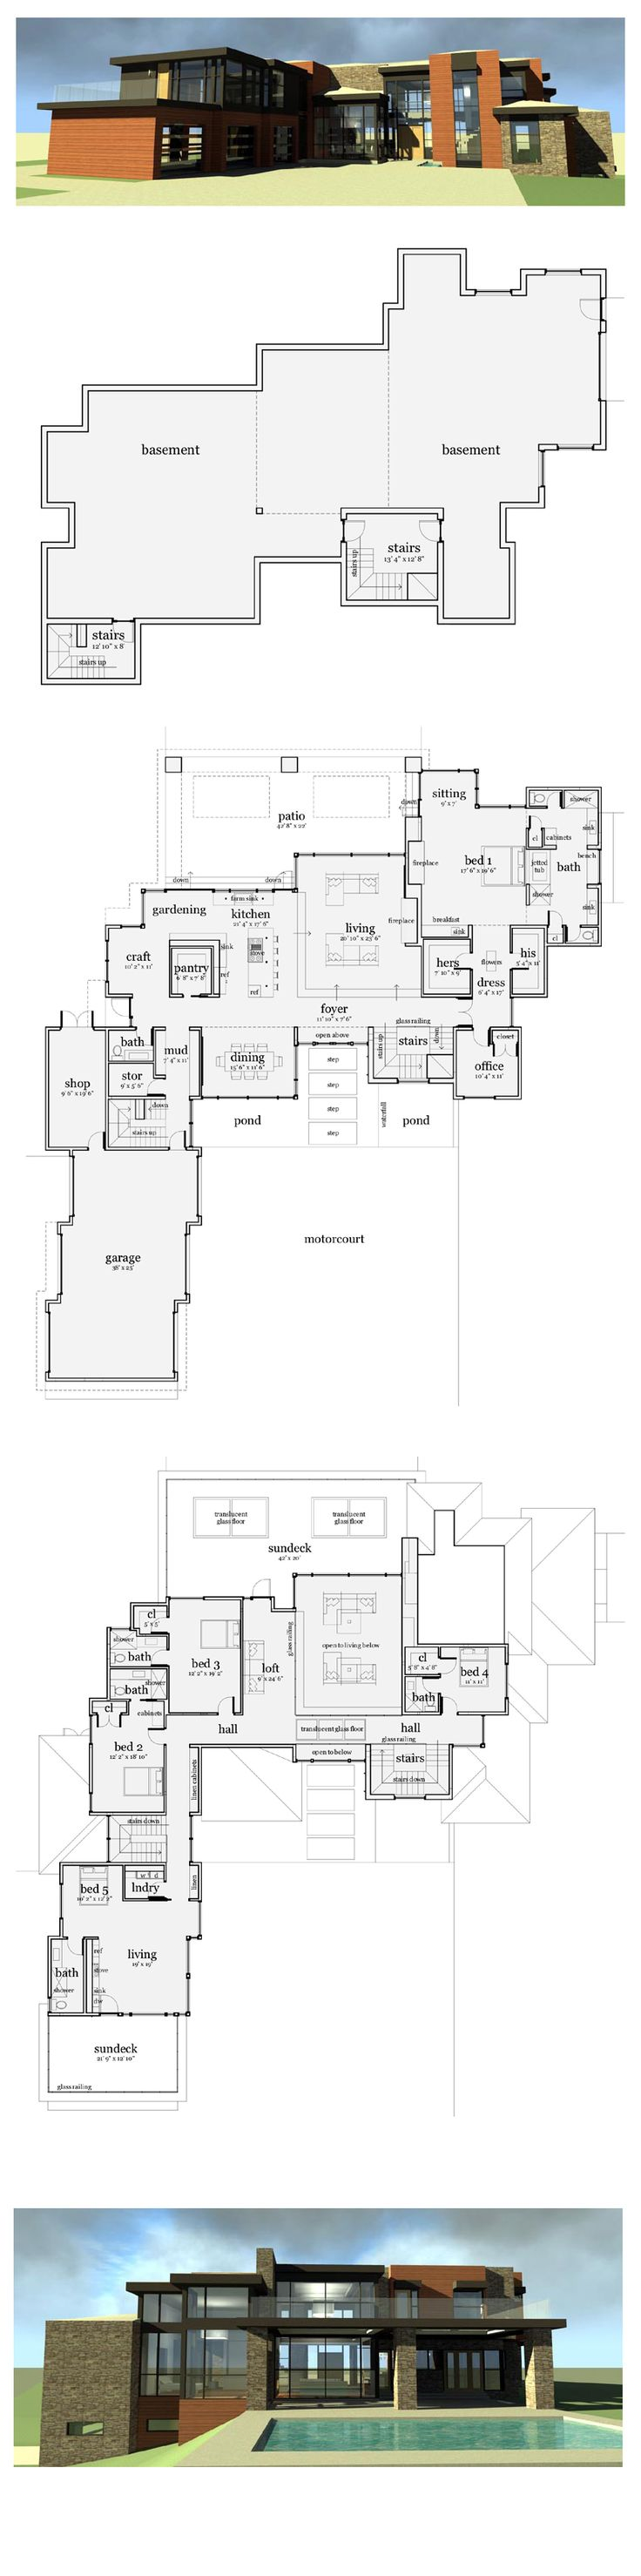 Modern House Plan 67596 | Total Living Area: 5165 sq. ft., 5 bedrooms & 5.5 bathrooms. The entry walk steps across the reflecting pond and waterfall. Inside, the entry is open to the translucent bridge above. The kitchen, gardening area and craft room are connected and provide a continuous work area. #modernplan #houseplan